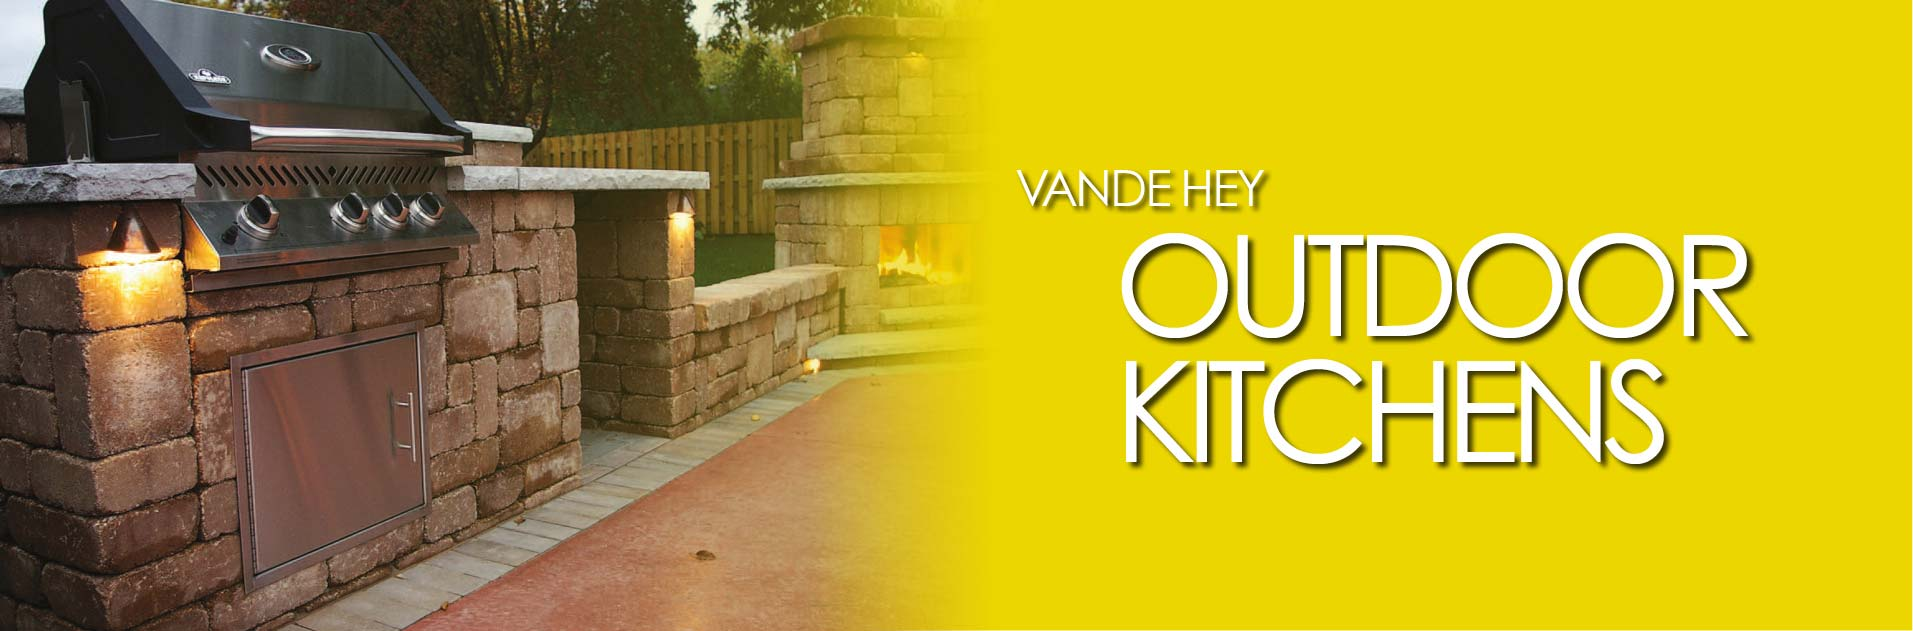 Landscaping and Outdoor Kitchens in Wisconsin